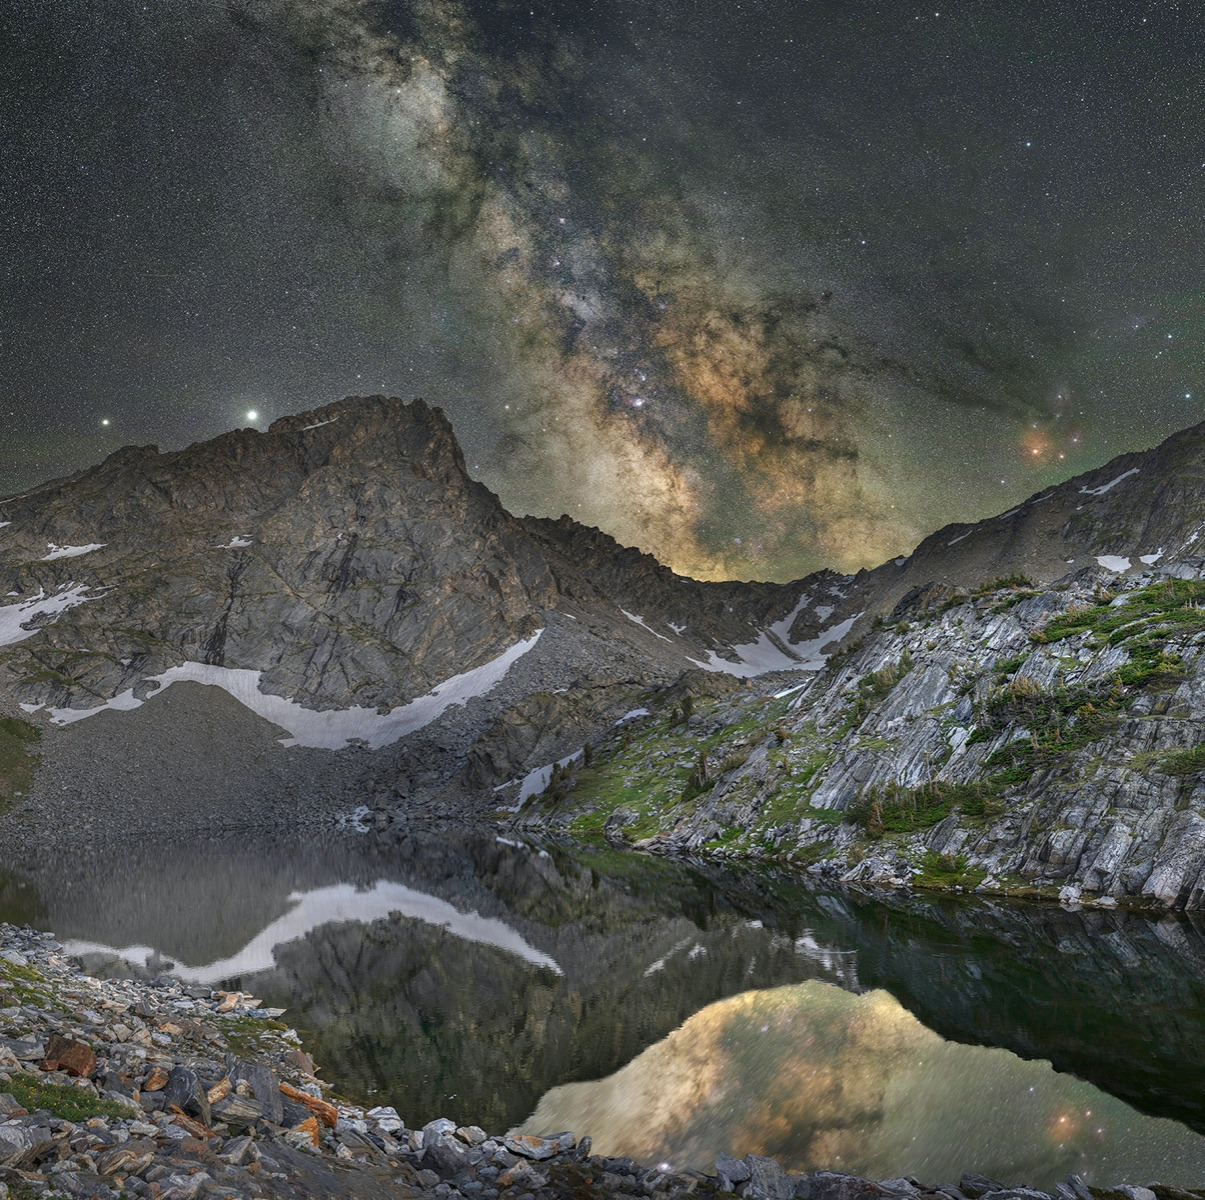 """Beehive Lake at Moonlight"" by Jake Mosher"